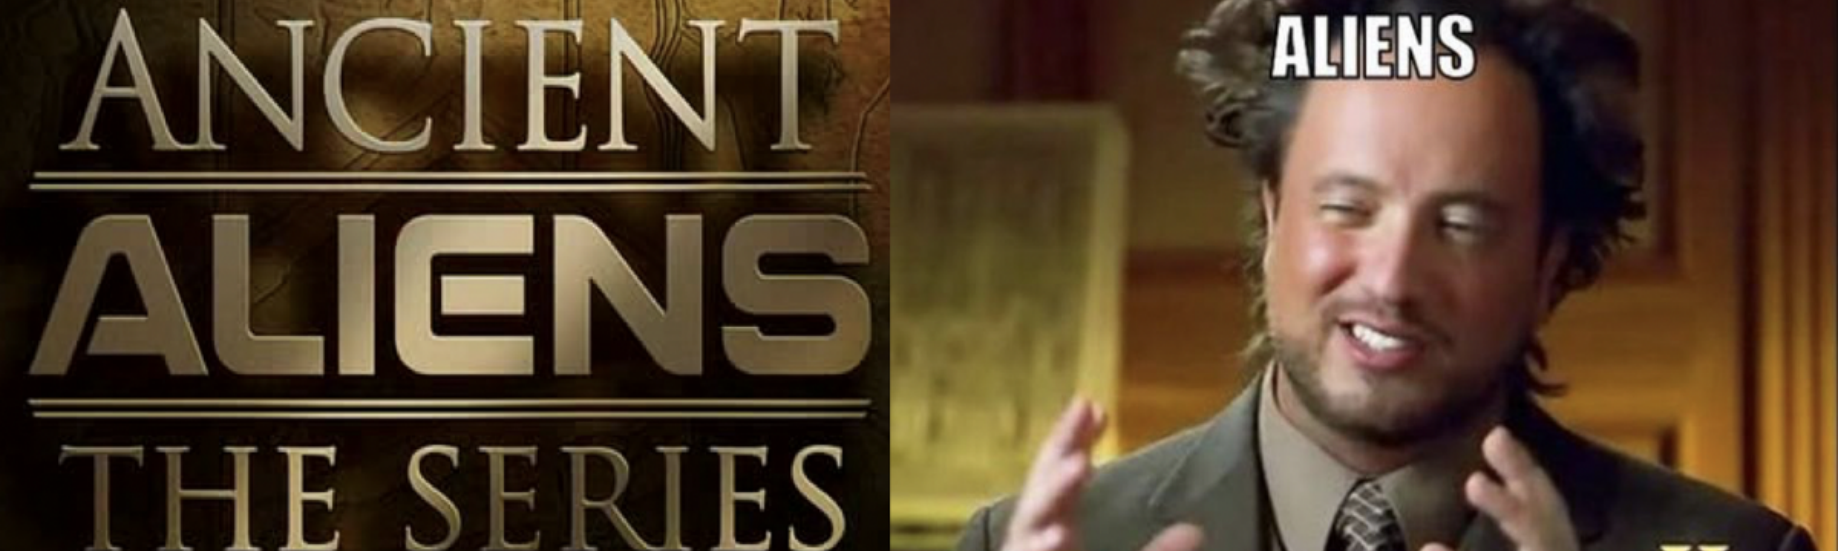 """Ancient Aliens: Evidence of Stephen Hawking's Claim that """"Philosophy"""